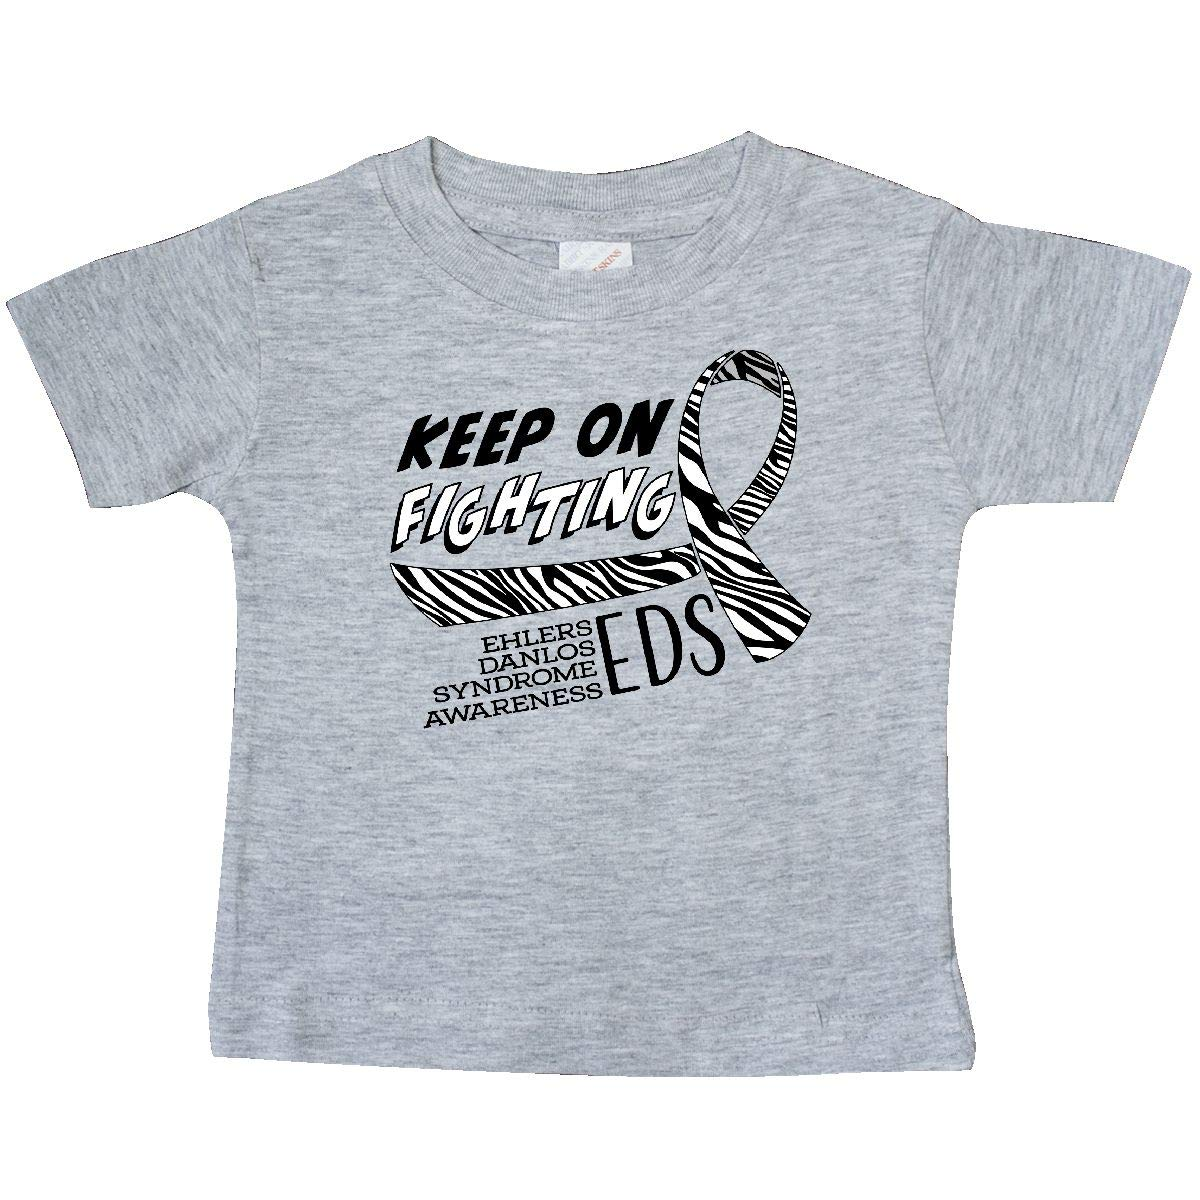 Ehlers Danlos Syndrome Awareness Baby T-Shirt inktastic Keep on Fighting